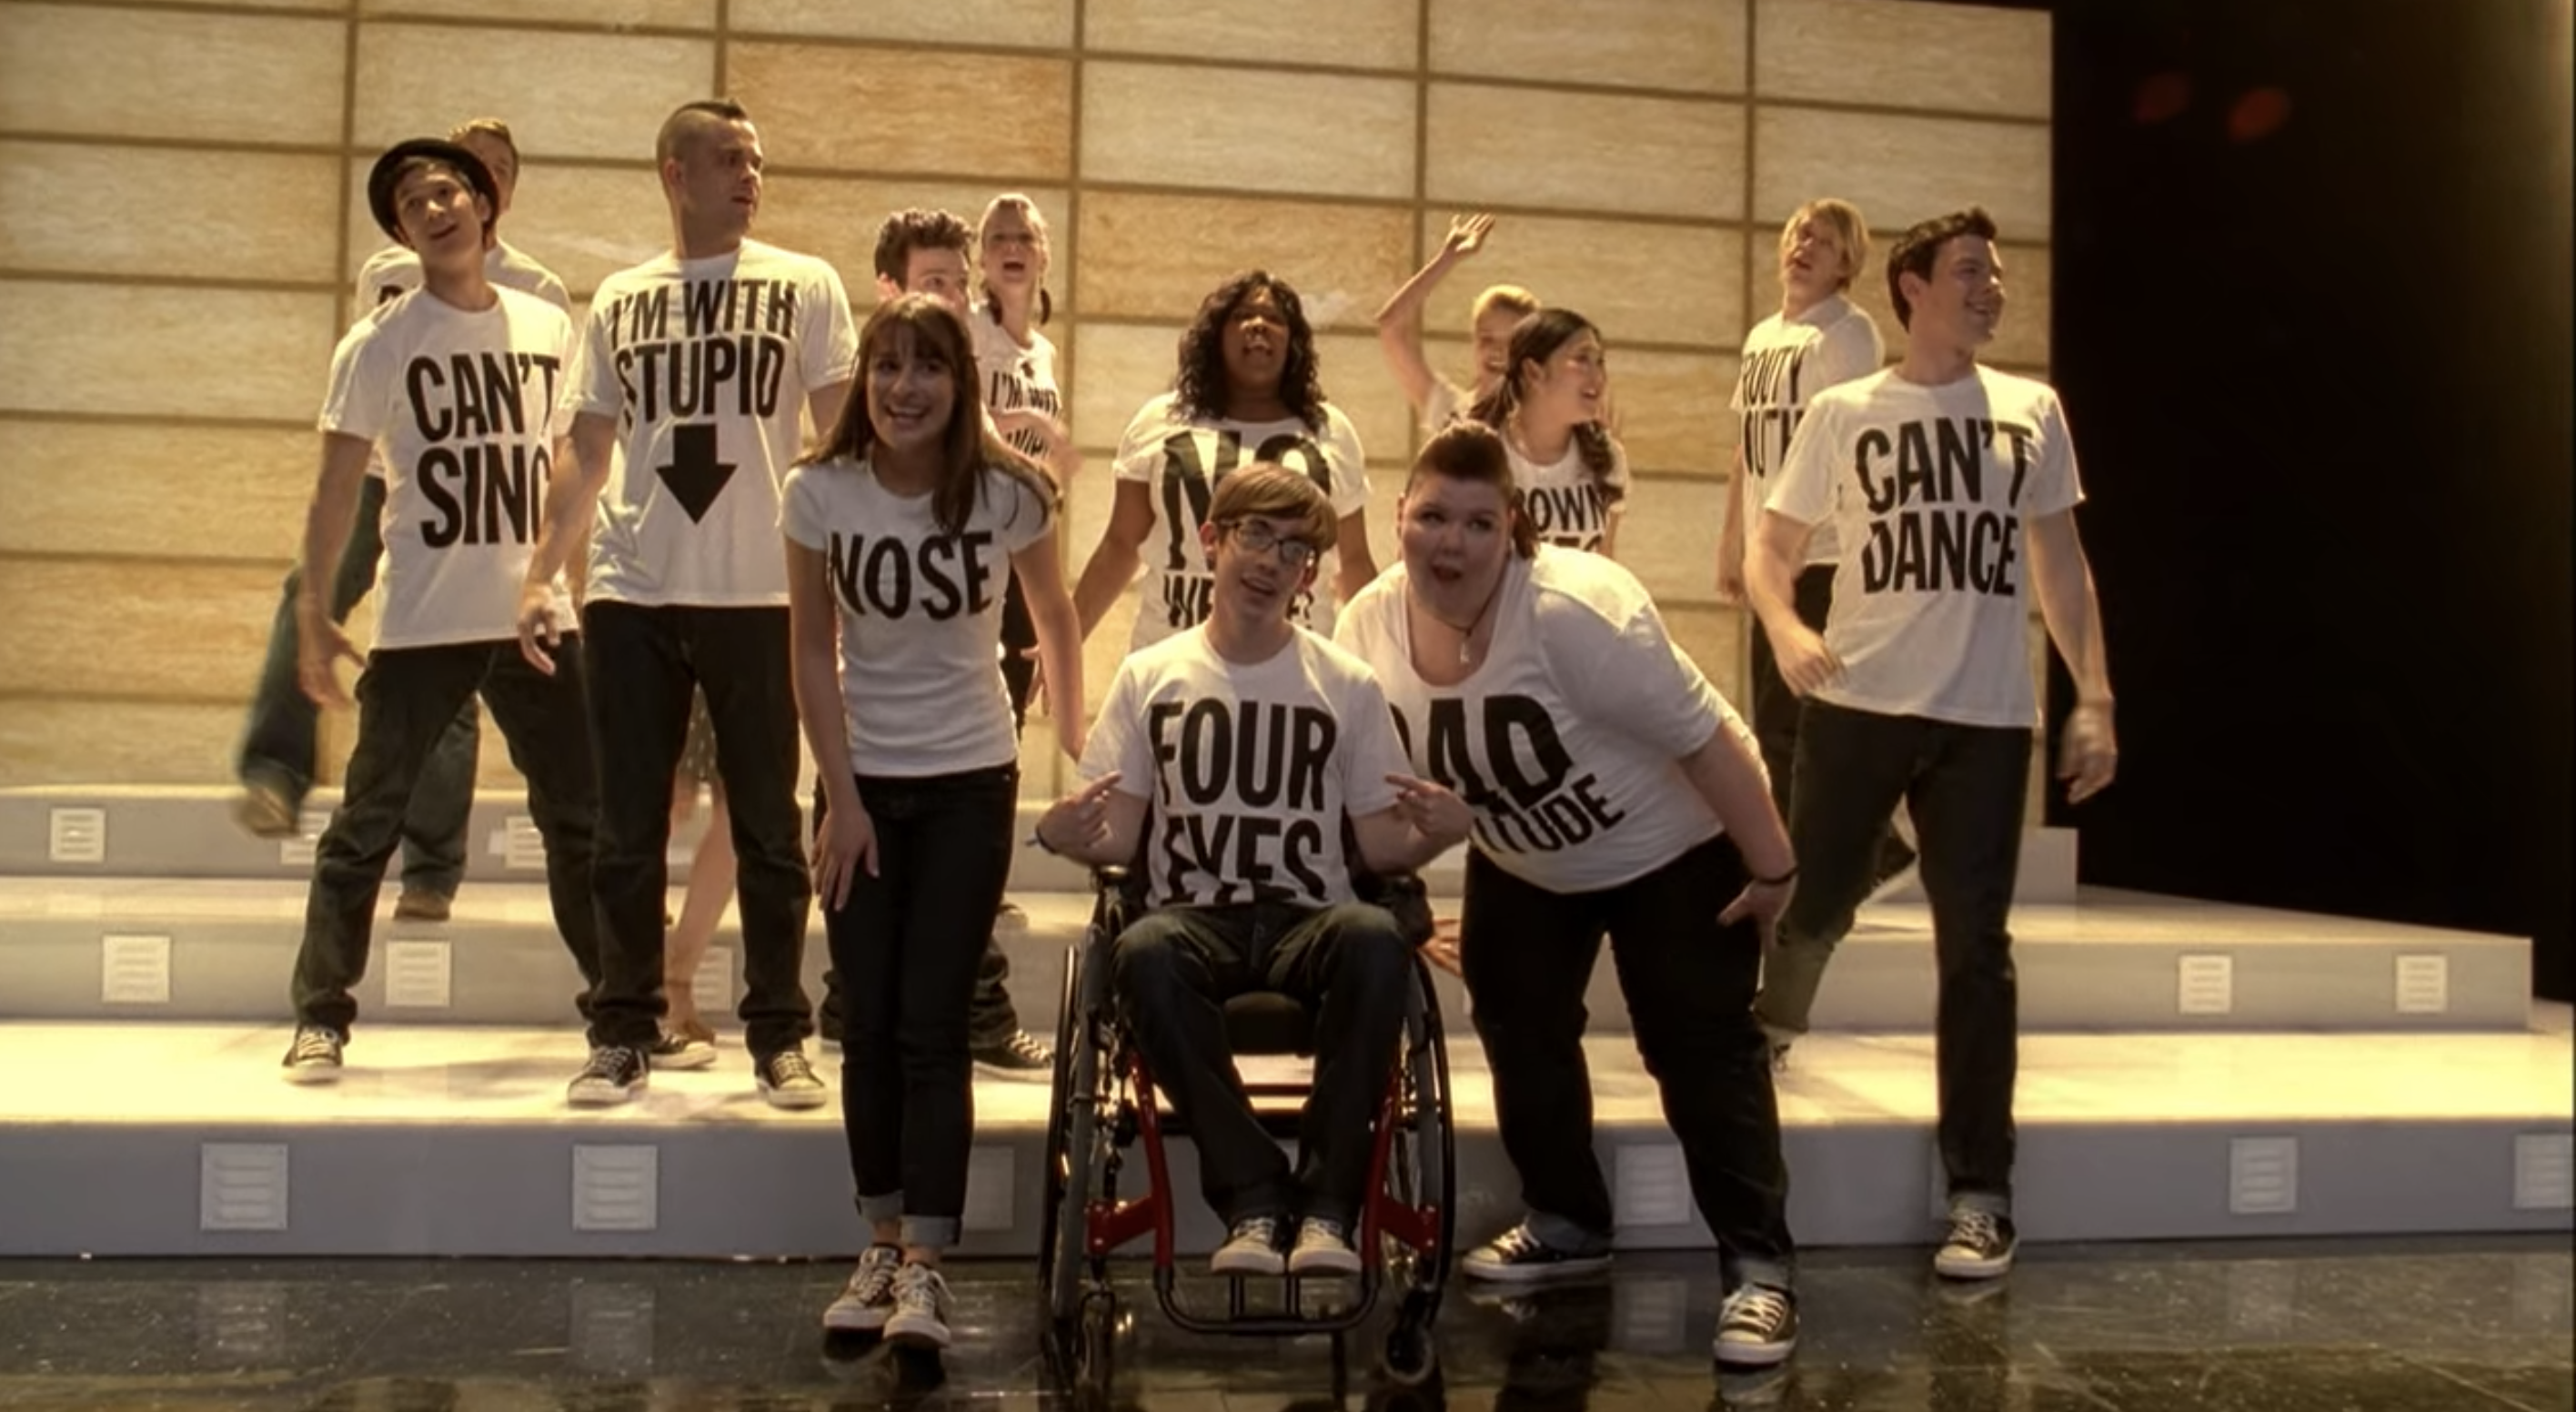 The New Directions sing on stage while wearing white T-shirts that state the individual traits they are proud of.